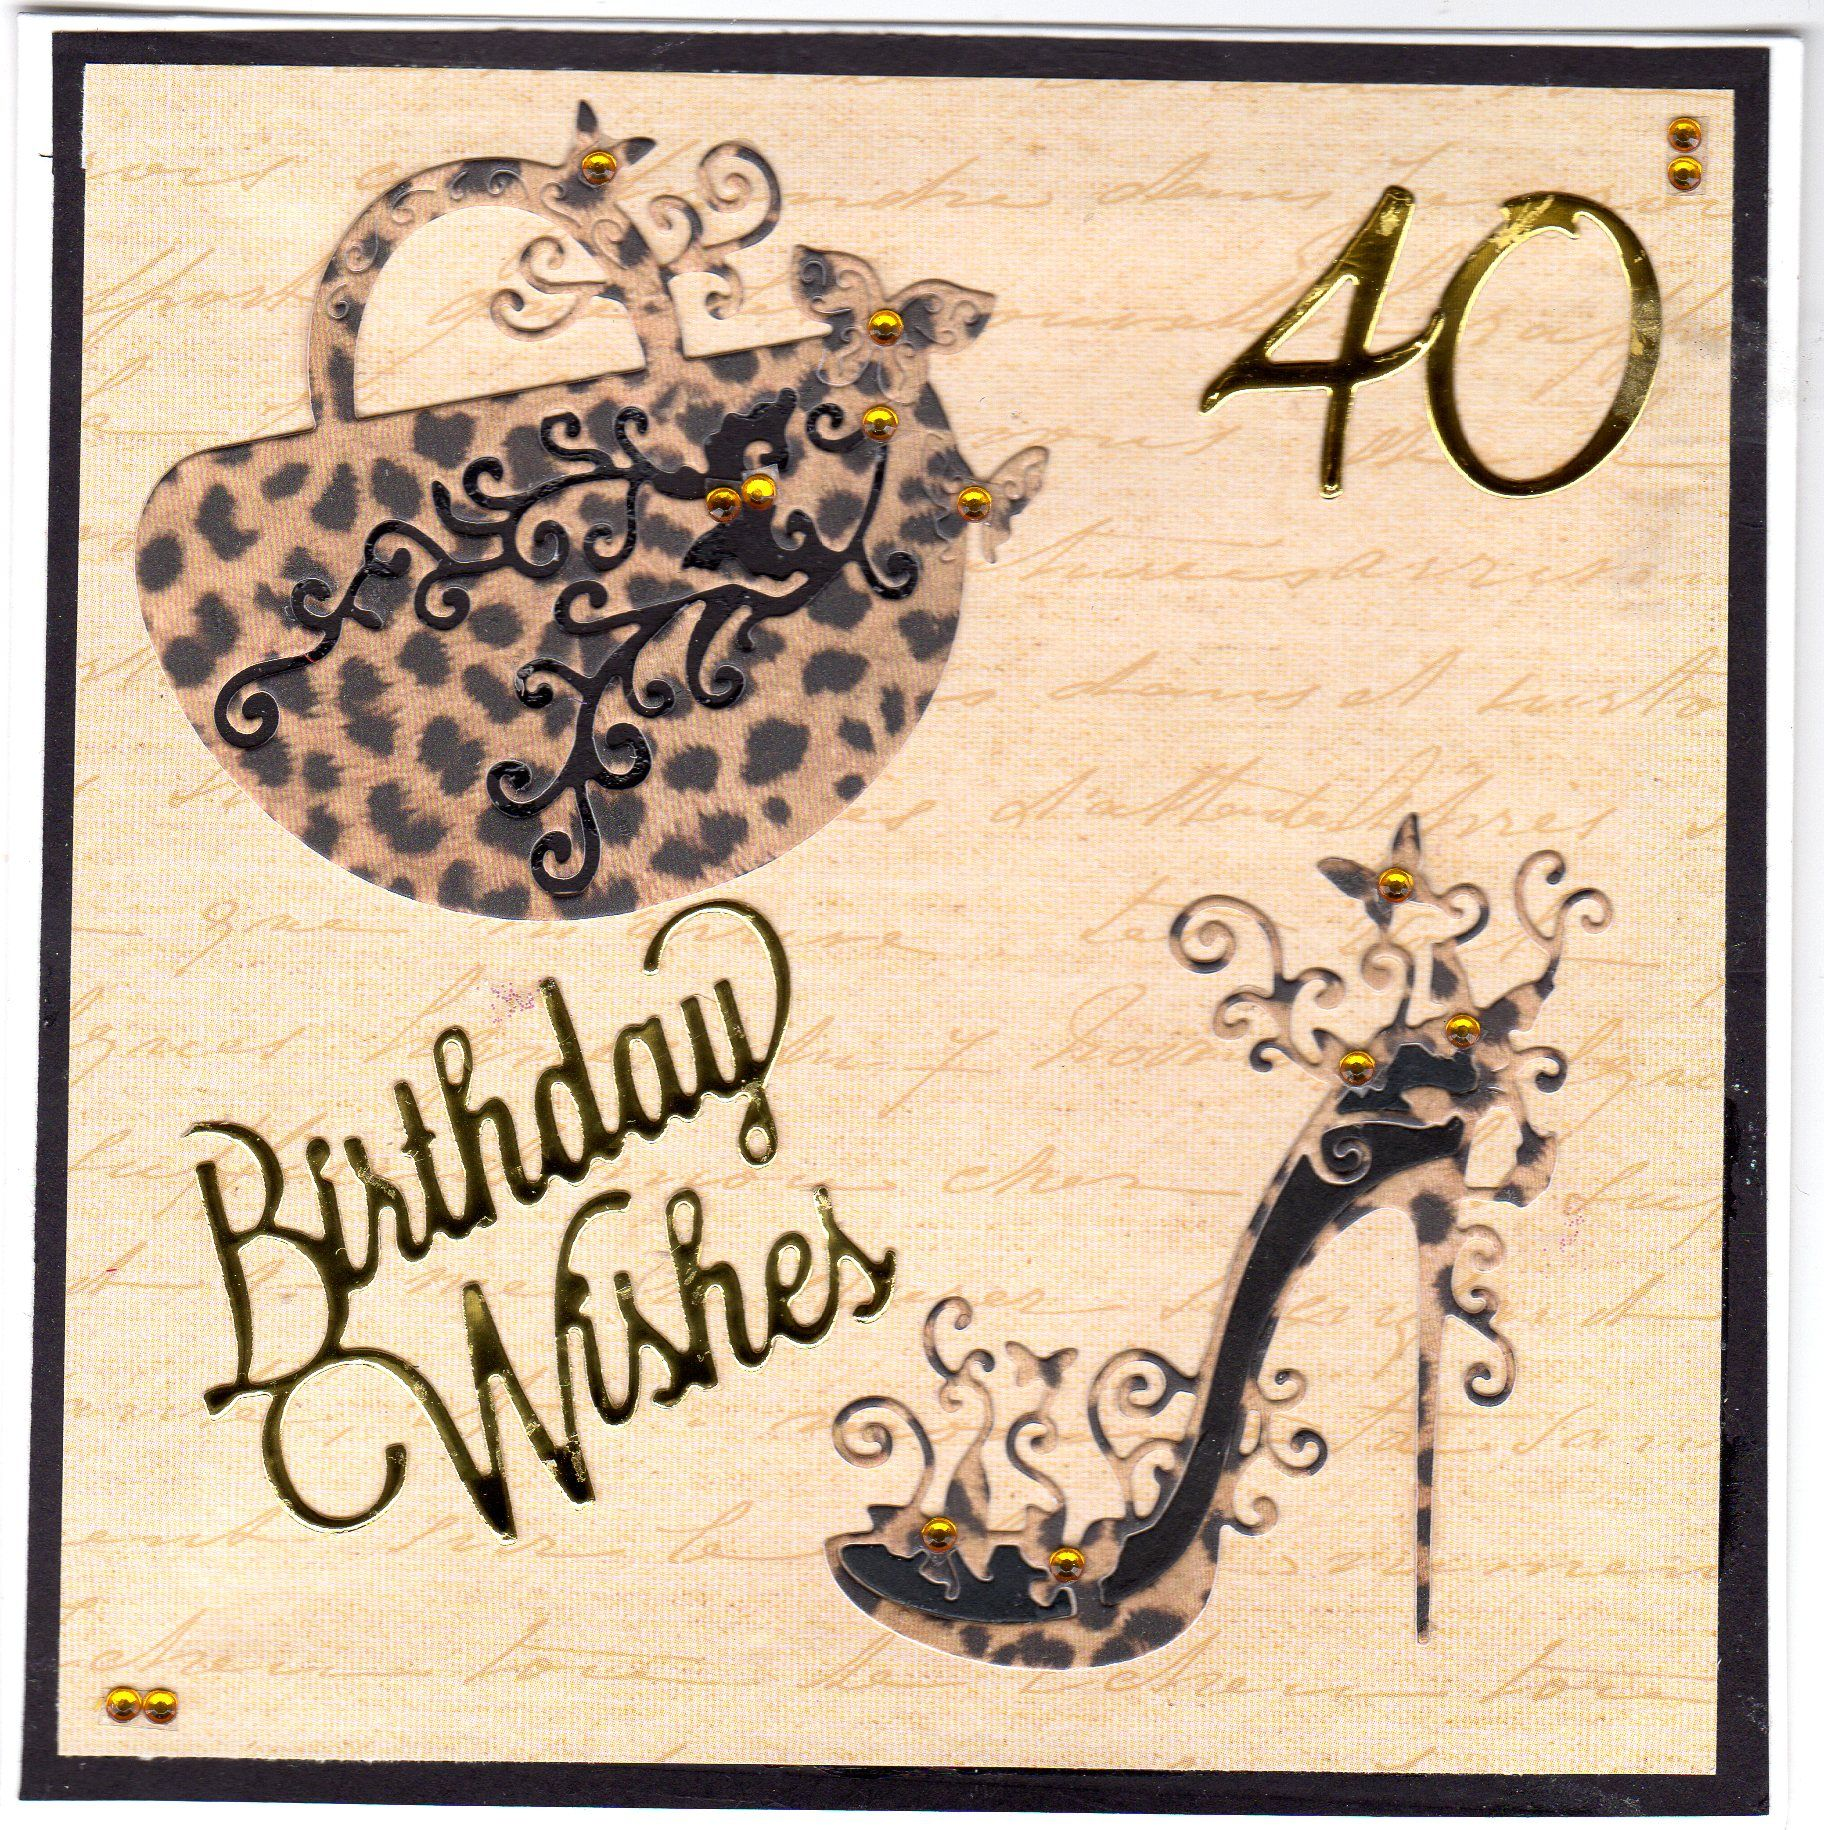 40th Birthday card with Tattered lace handbag and shoe